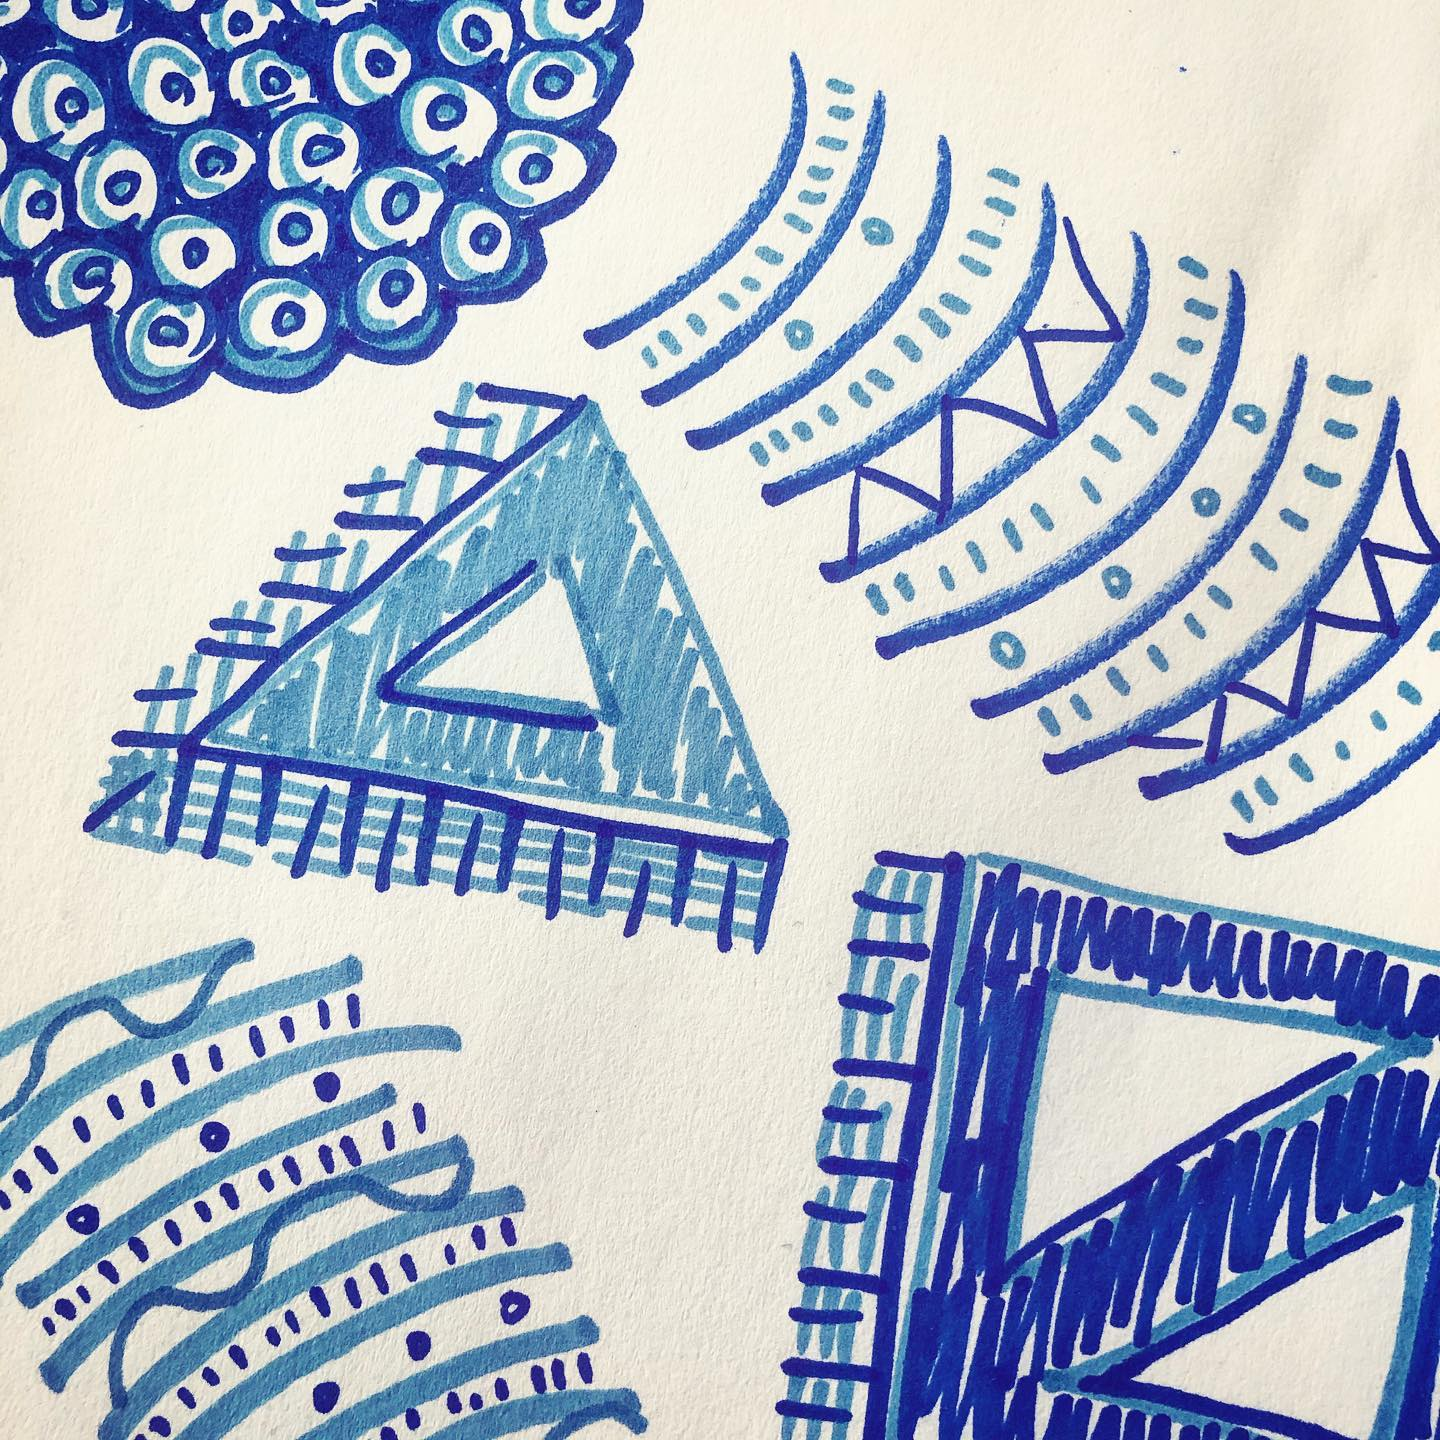 Doodily Doodily Doo – Desk Doodles